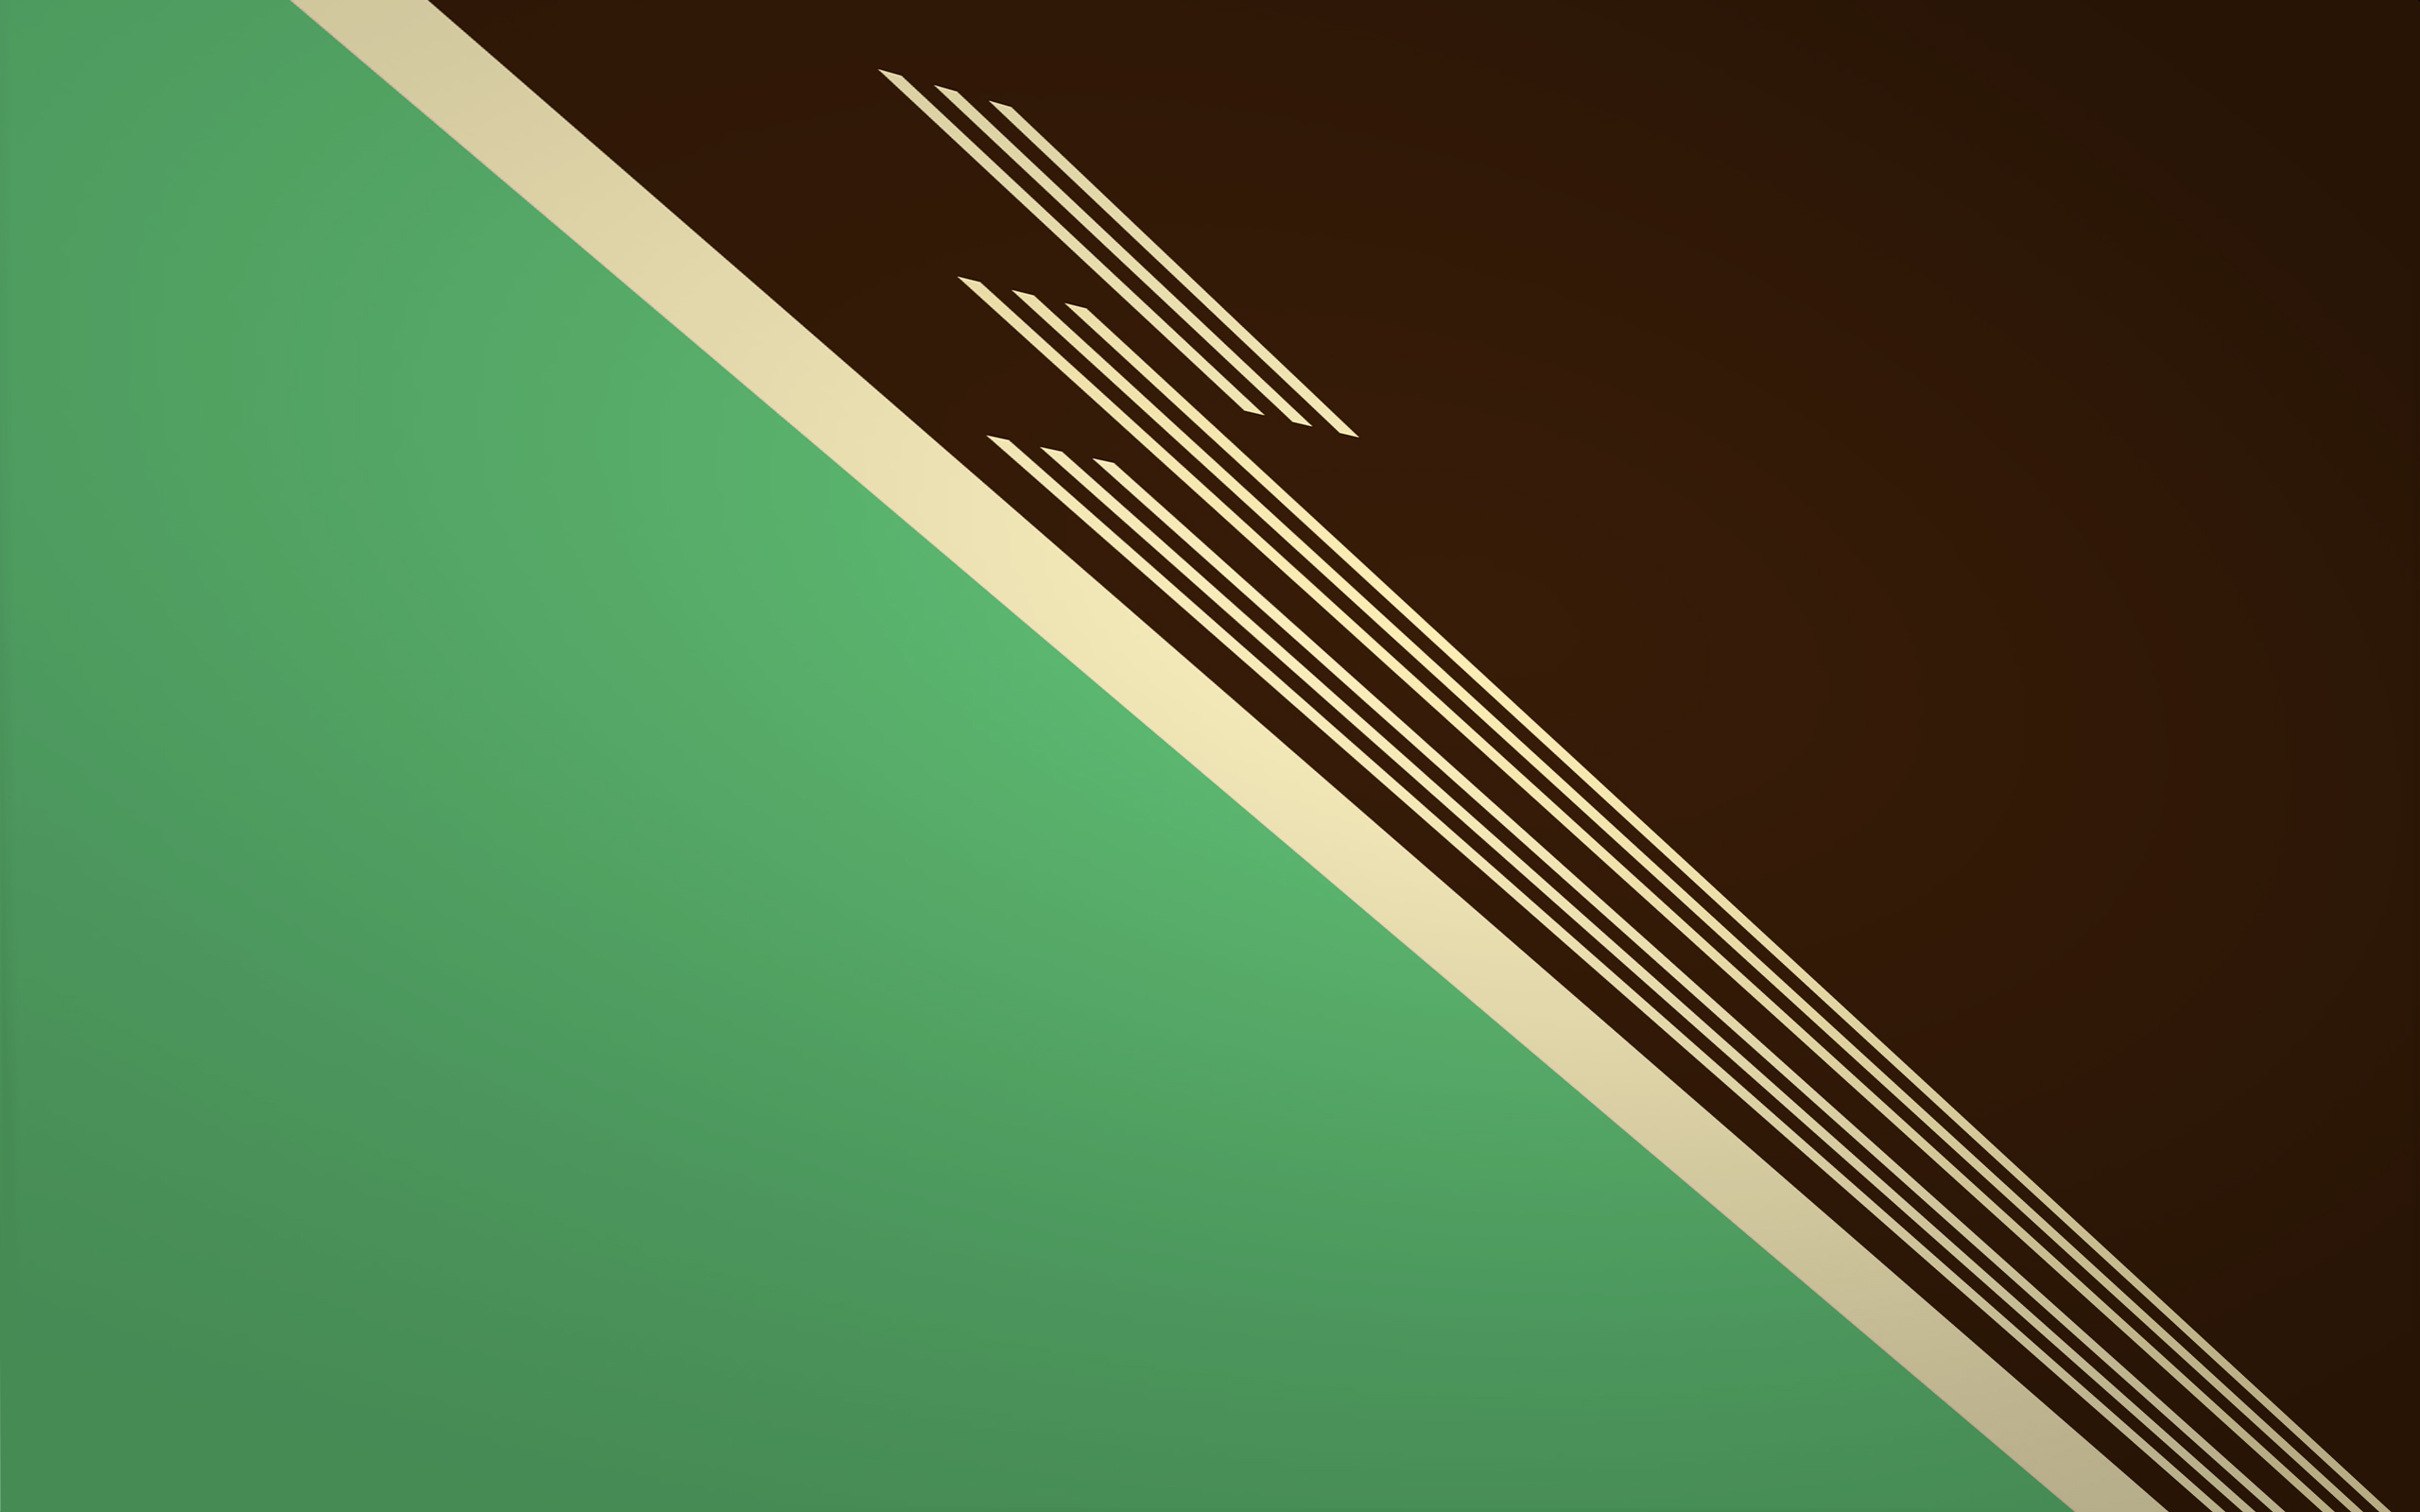 retro abstract wallpaper 16911